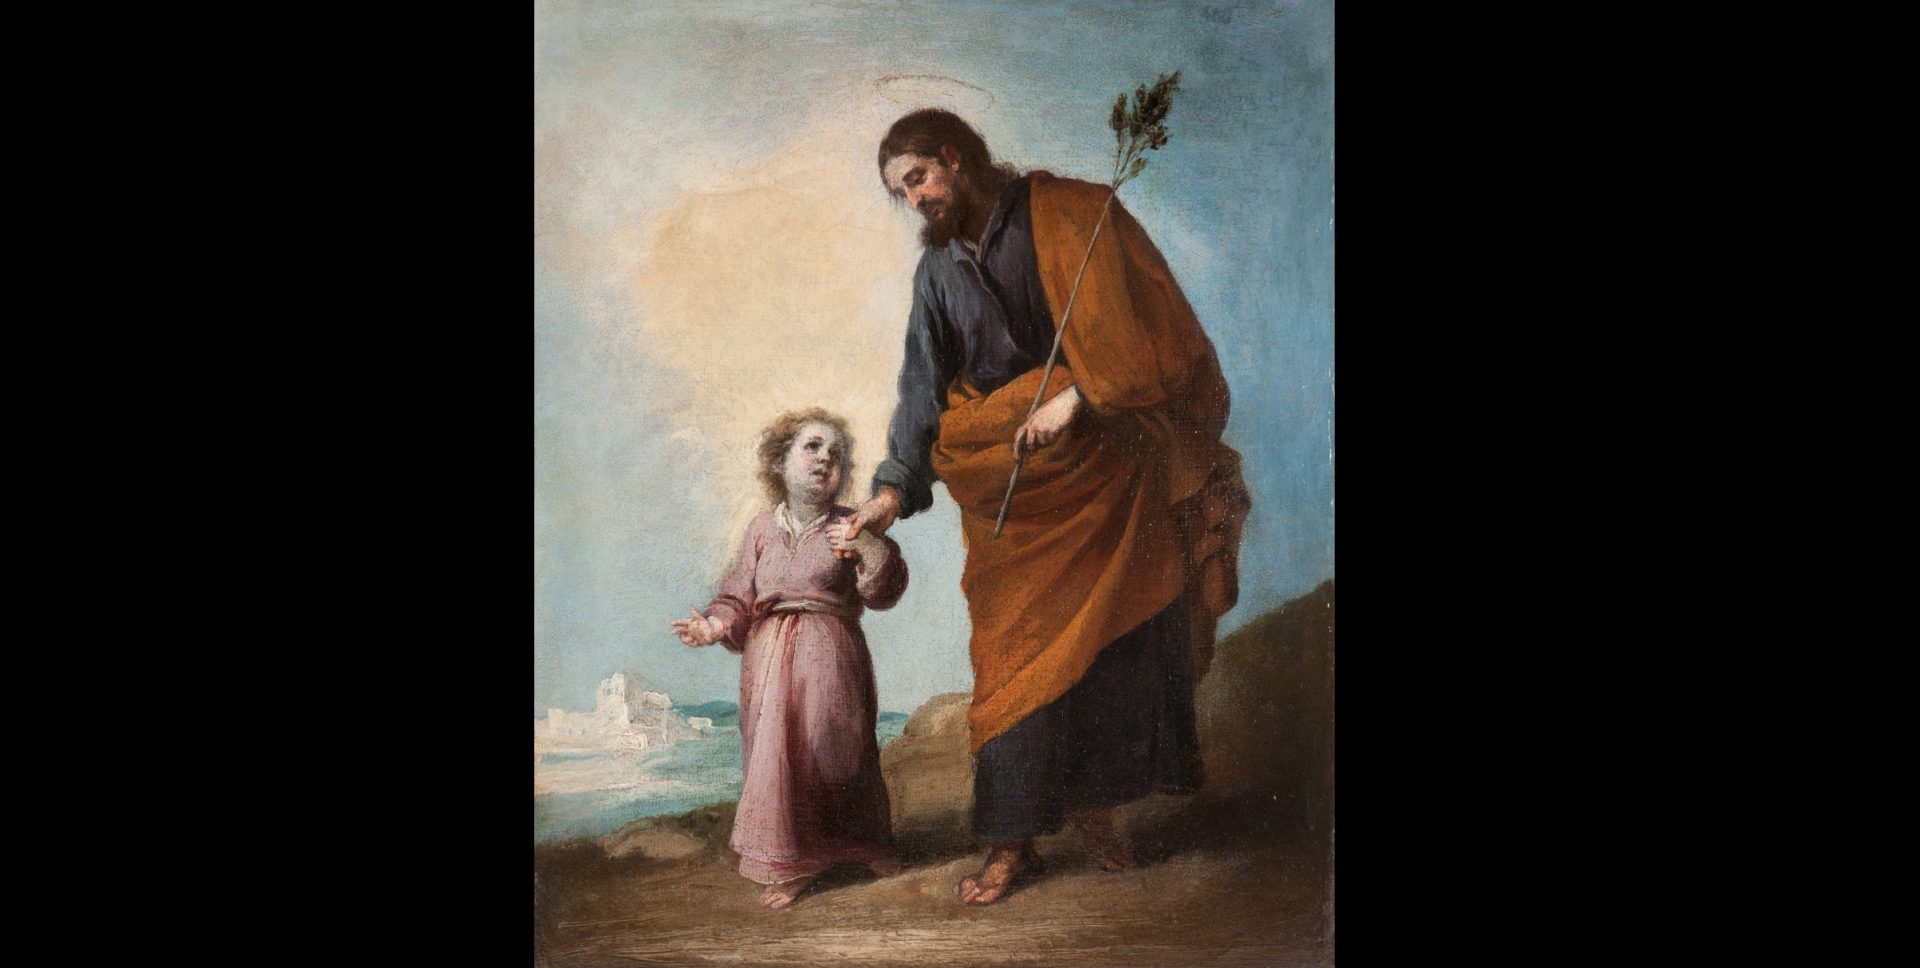 St Joseph with the Child Jesus of Bartolomé Esteban Murillo from BBVA Collection